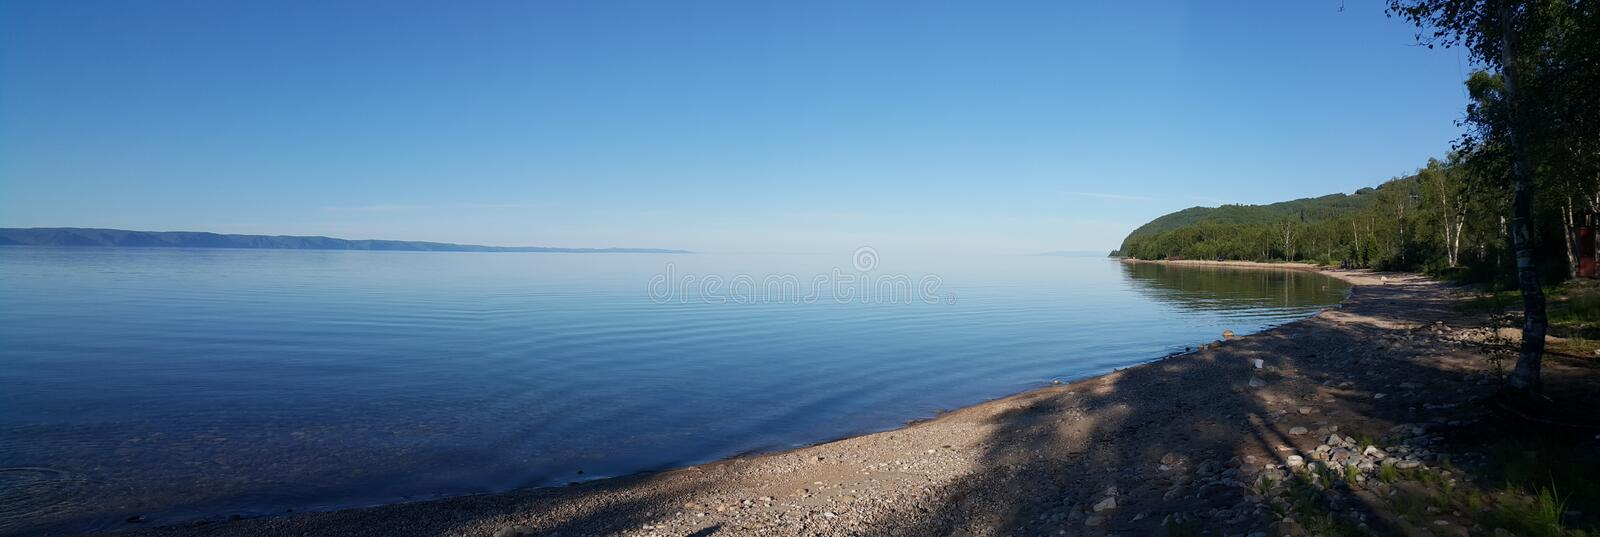 Panorama of lake Baikal. Is the most beautiful and deepest lake on our planet. The photo was taken in the Irkutsk region Slyudyanka in Russia stock photo